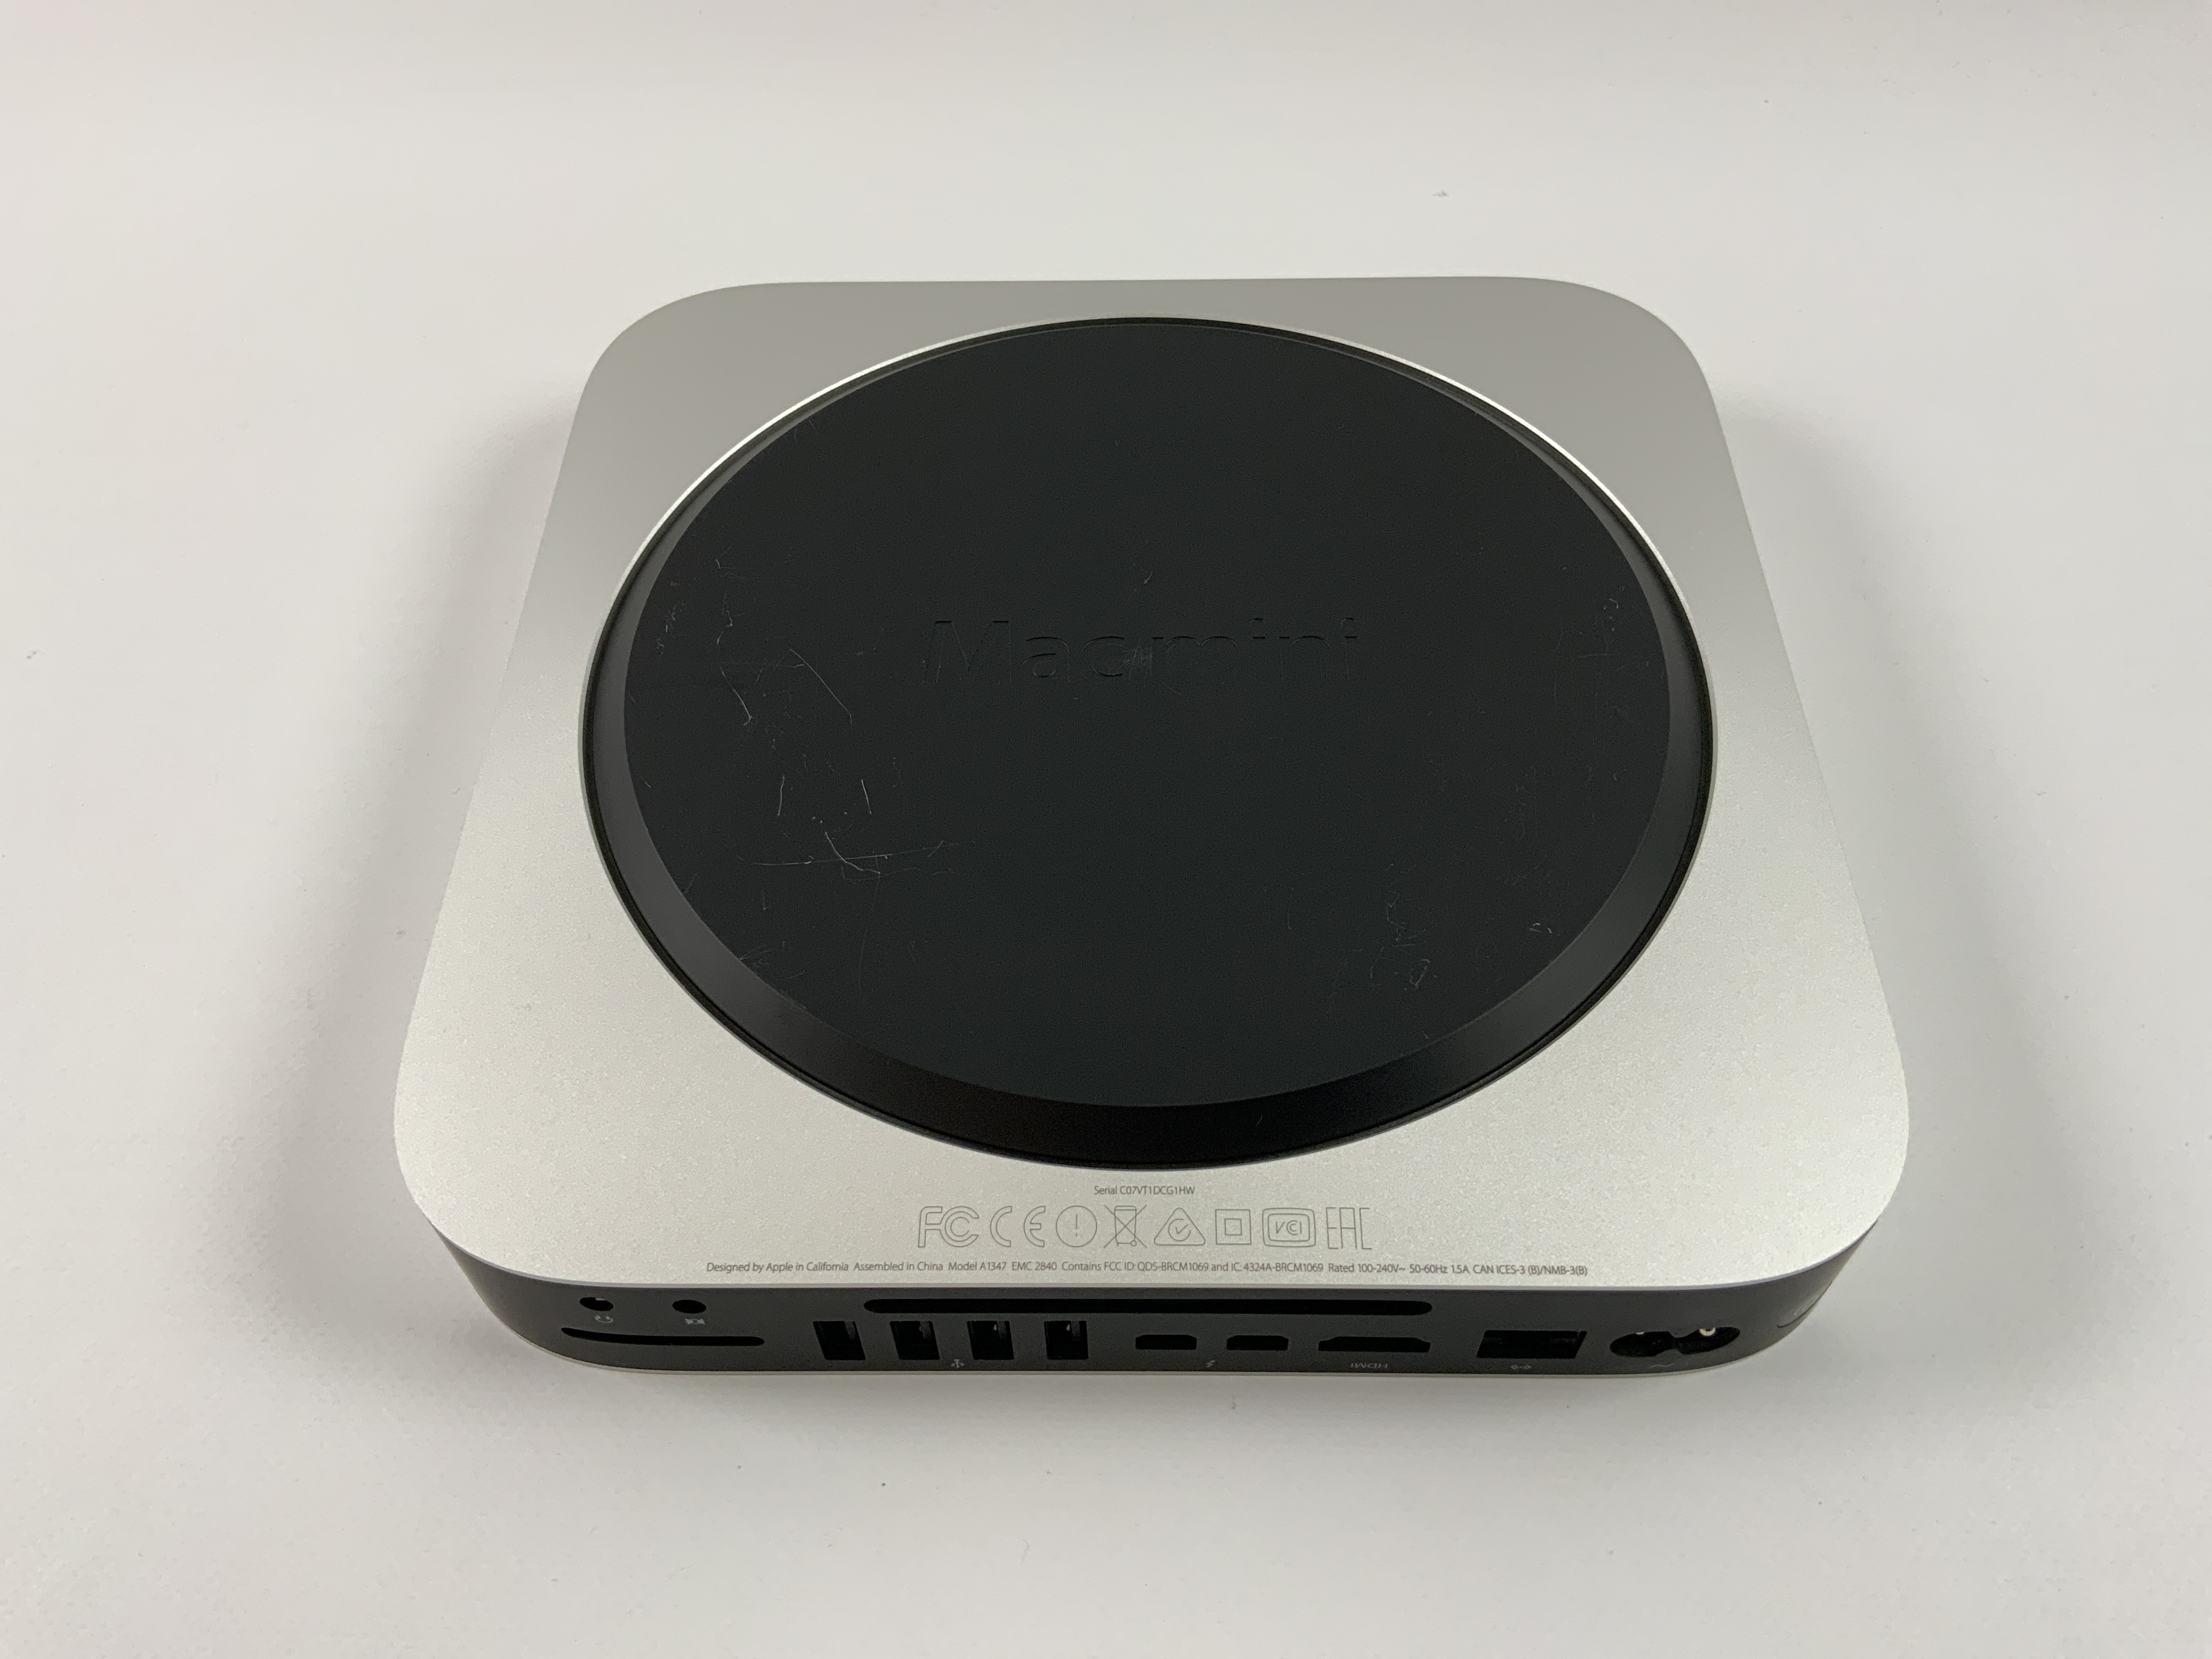 Mac Mini Late 2014 (Intel Core i5 2.6 GHz 8 GB RAM 1 TB HDD), Intel Core i5 2.6 GHz, 8 GB RAM, 1 TB HDD, image 2